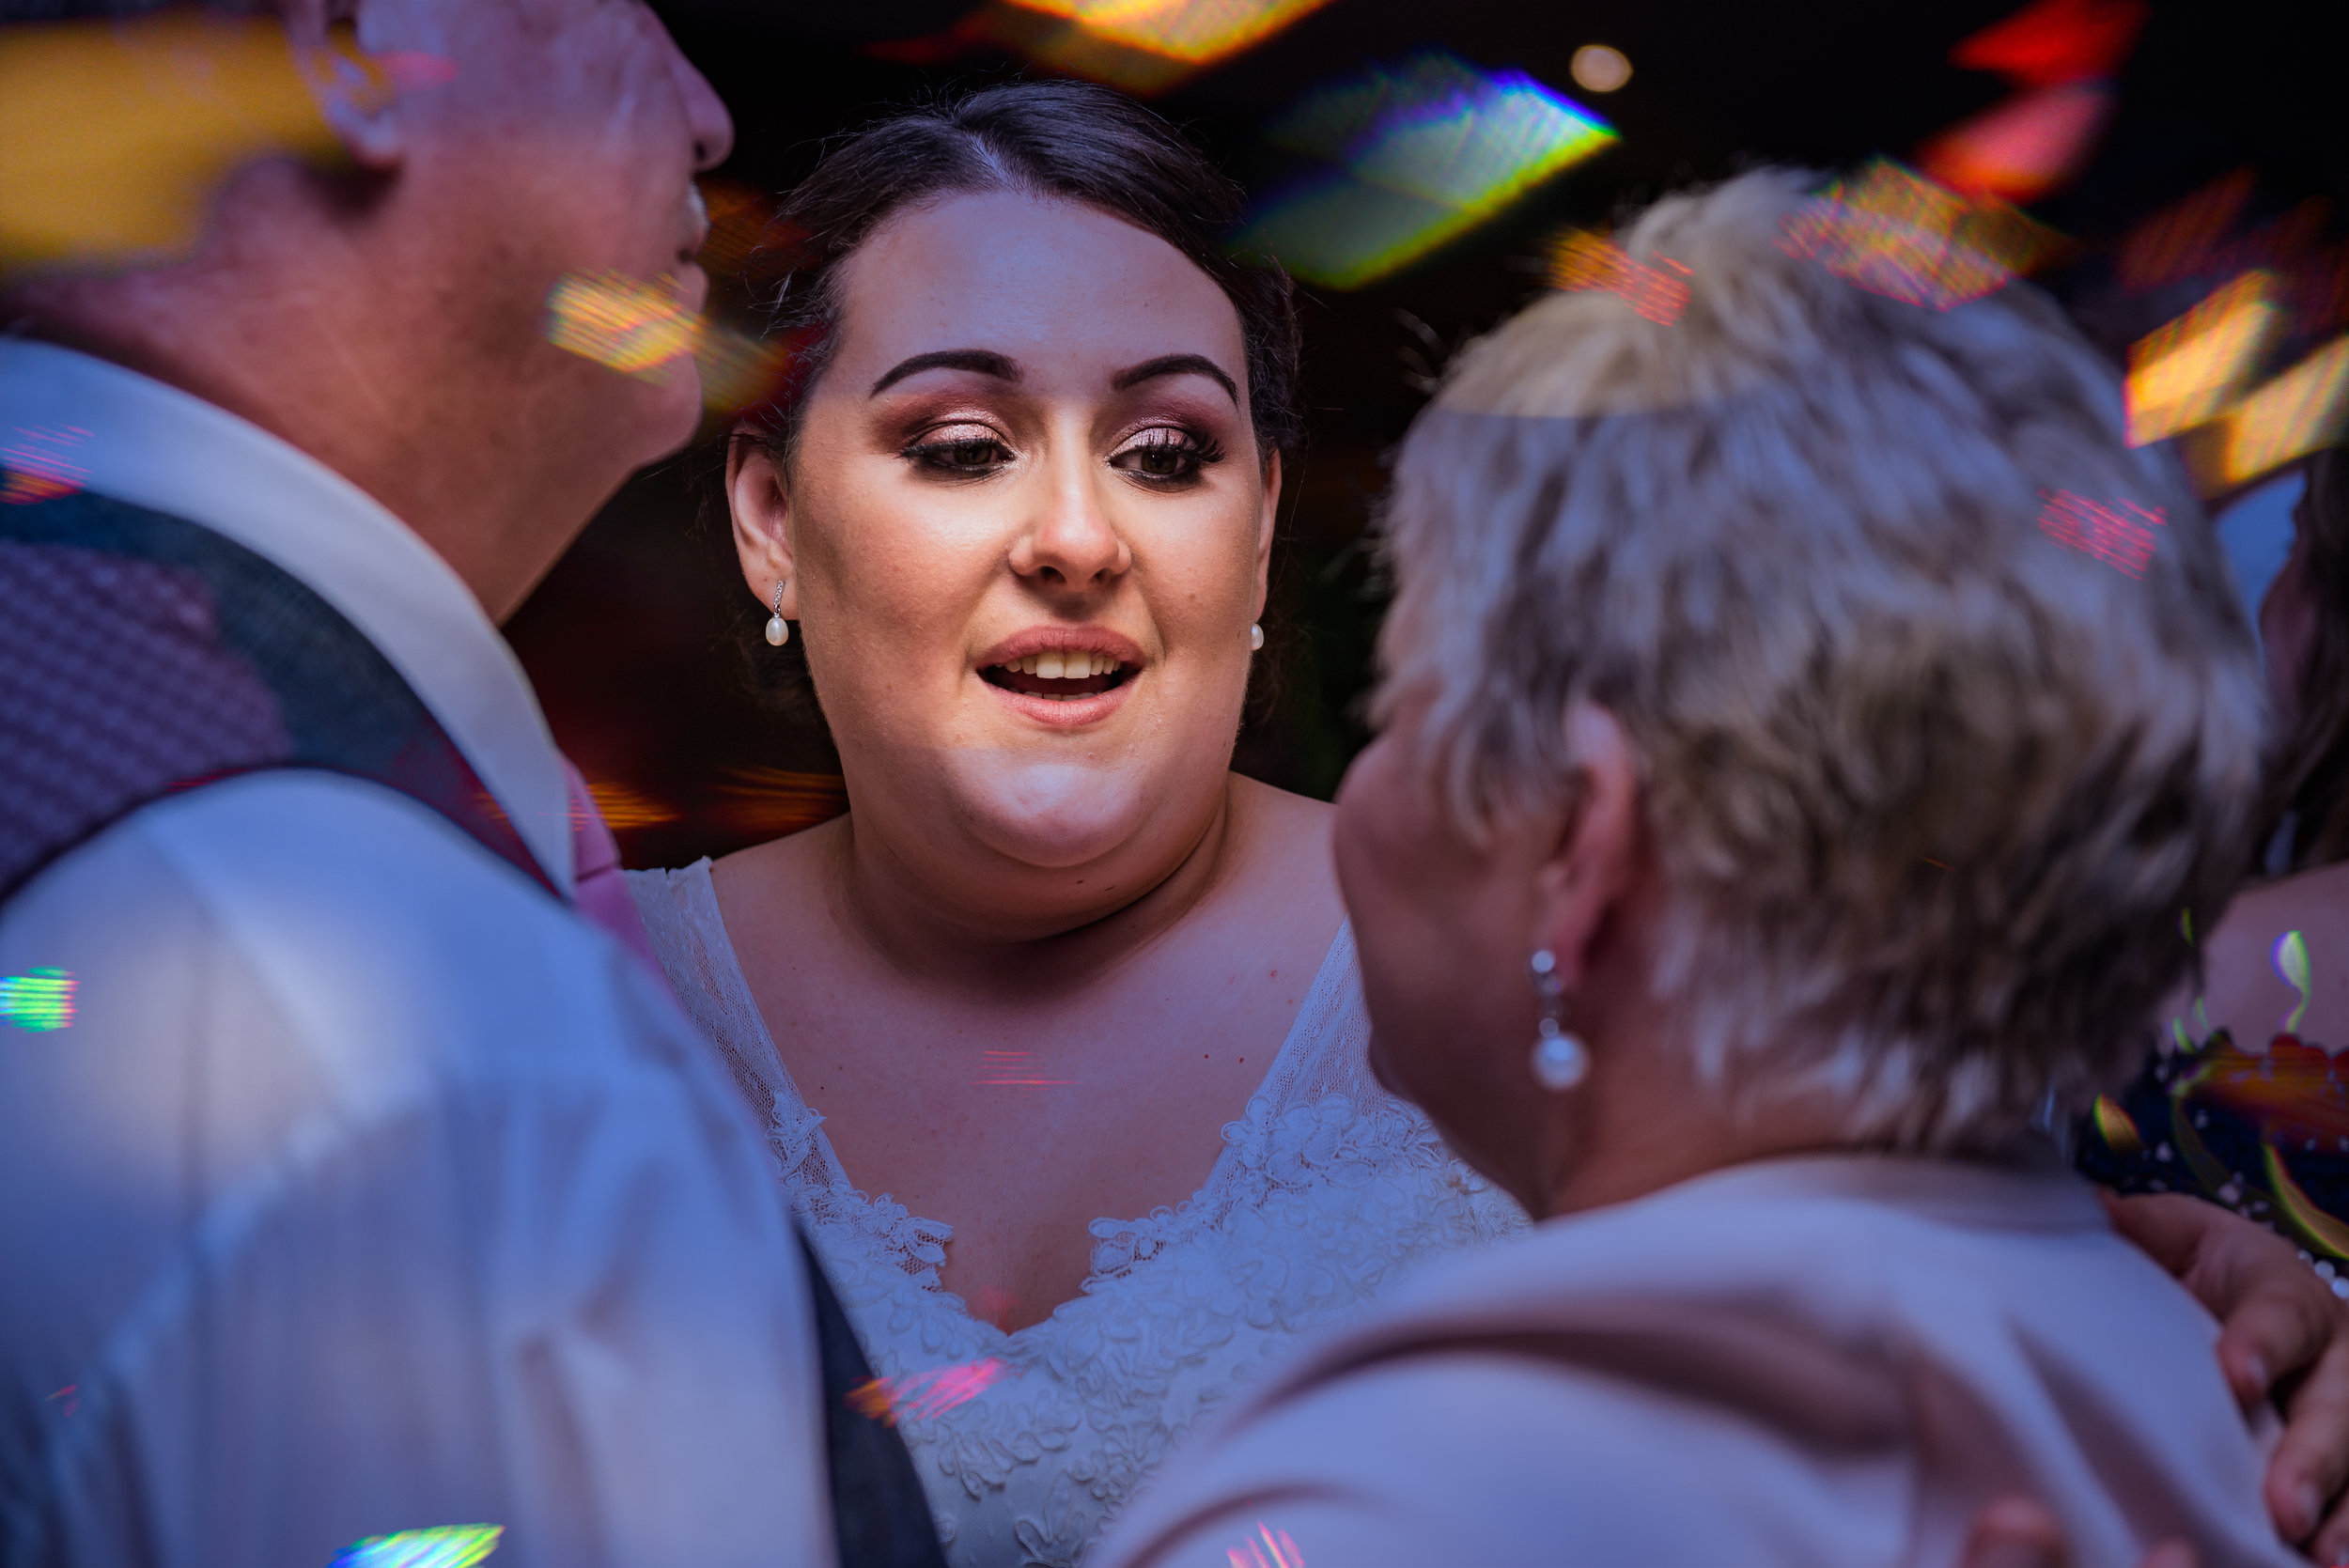 castle Bromwich hall hotel wedding photography natural photography with bride and her parents